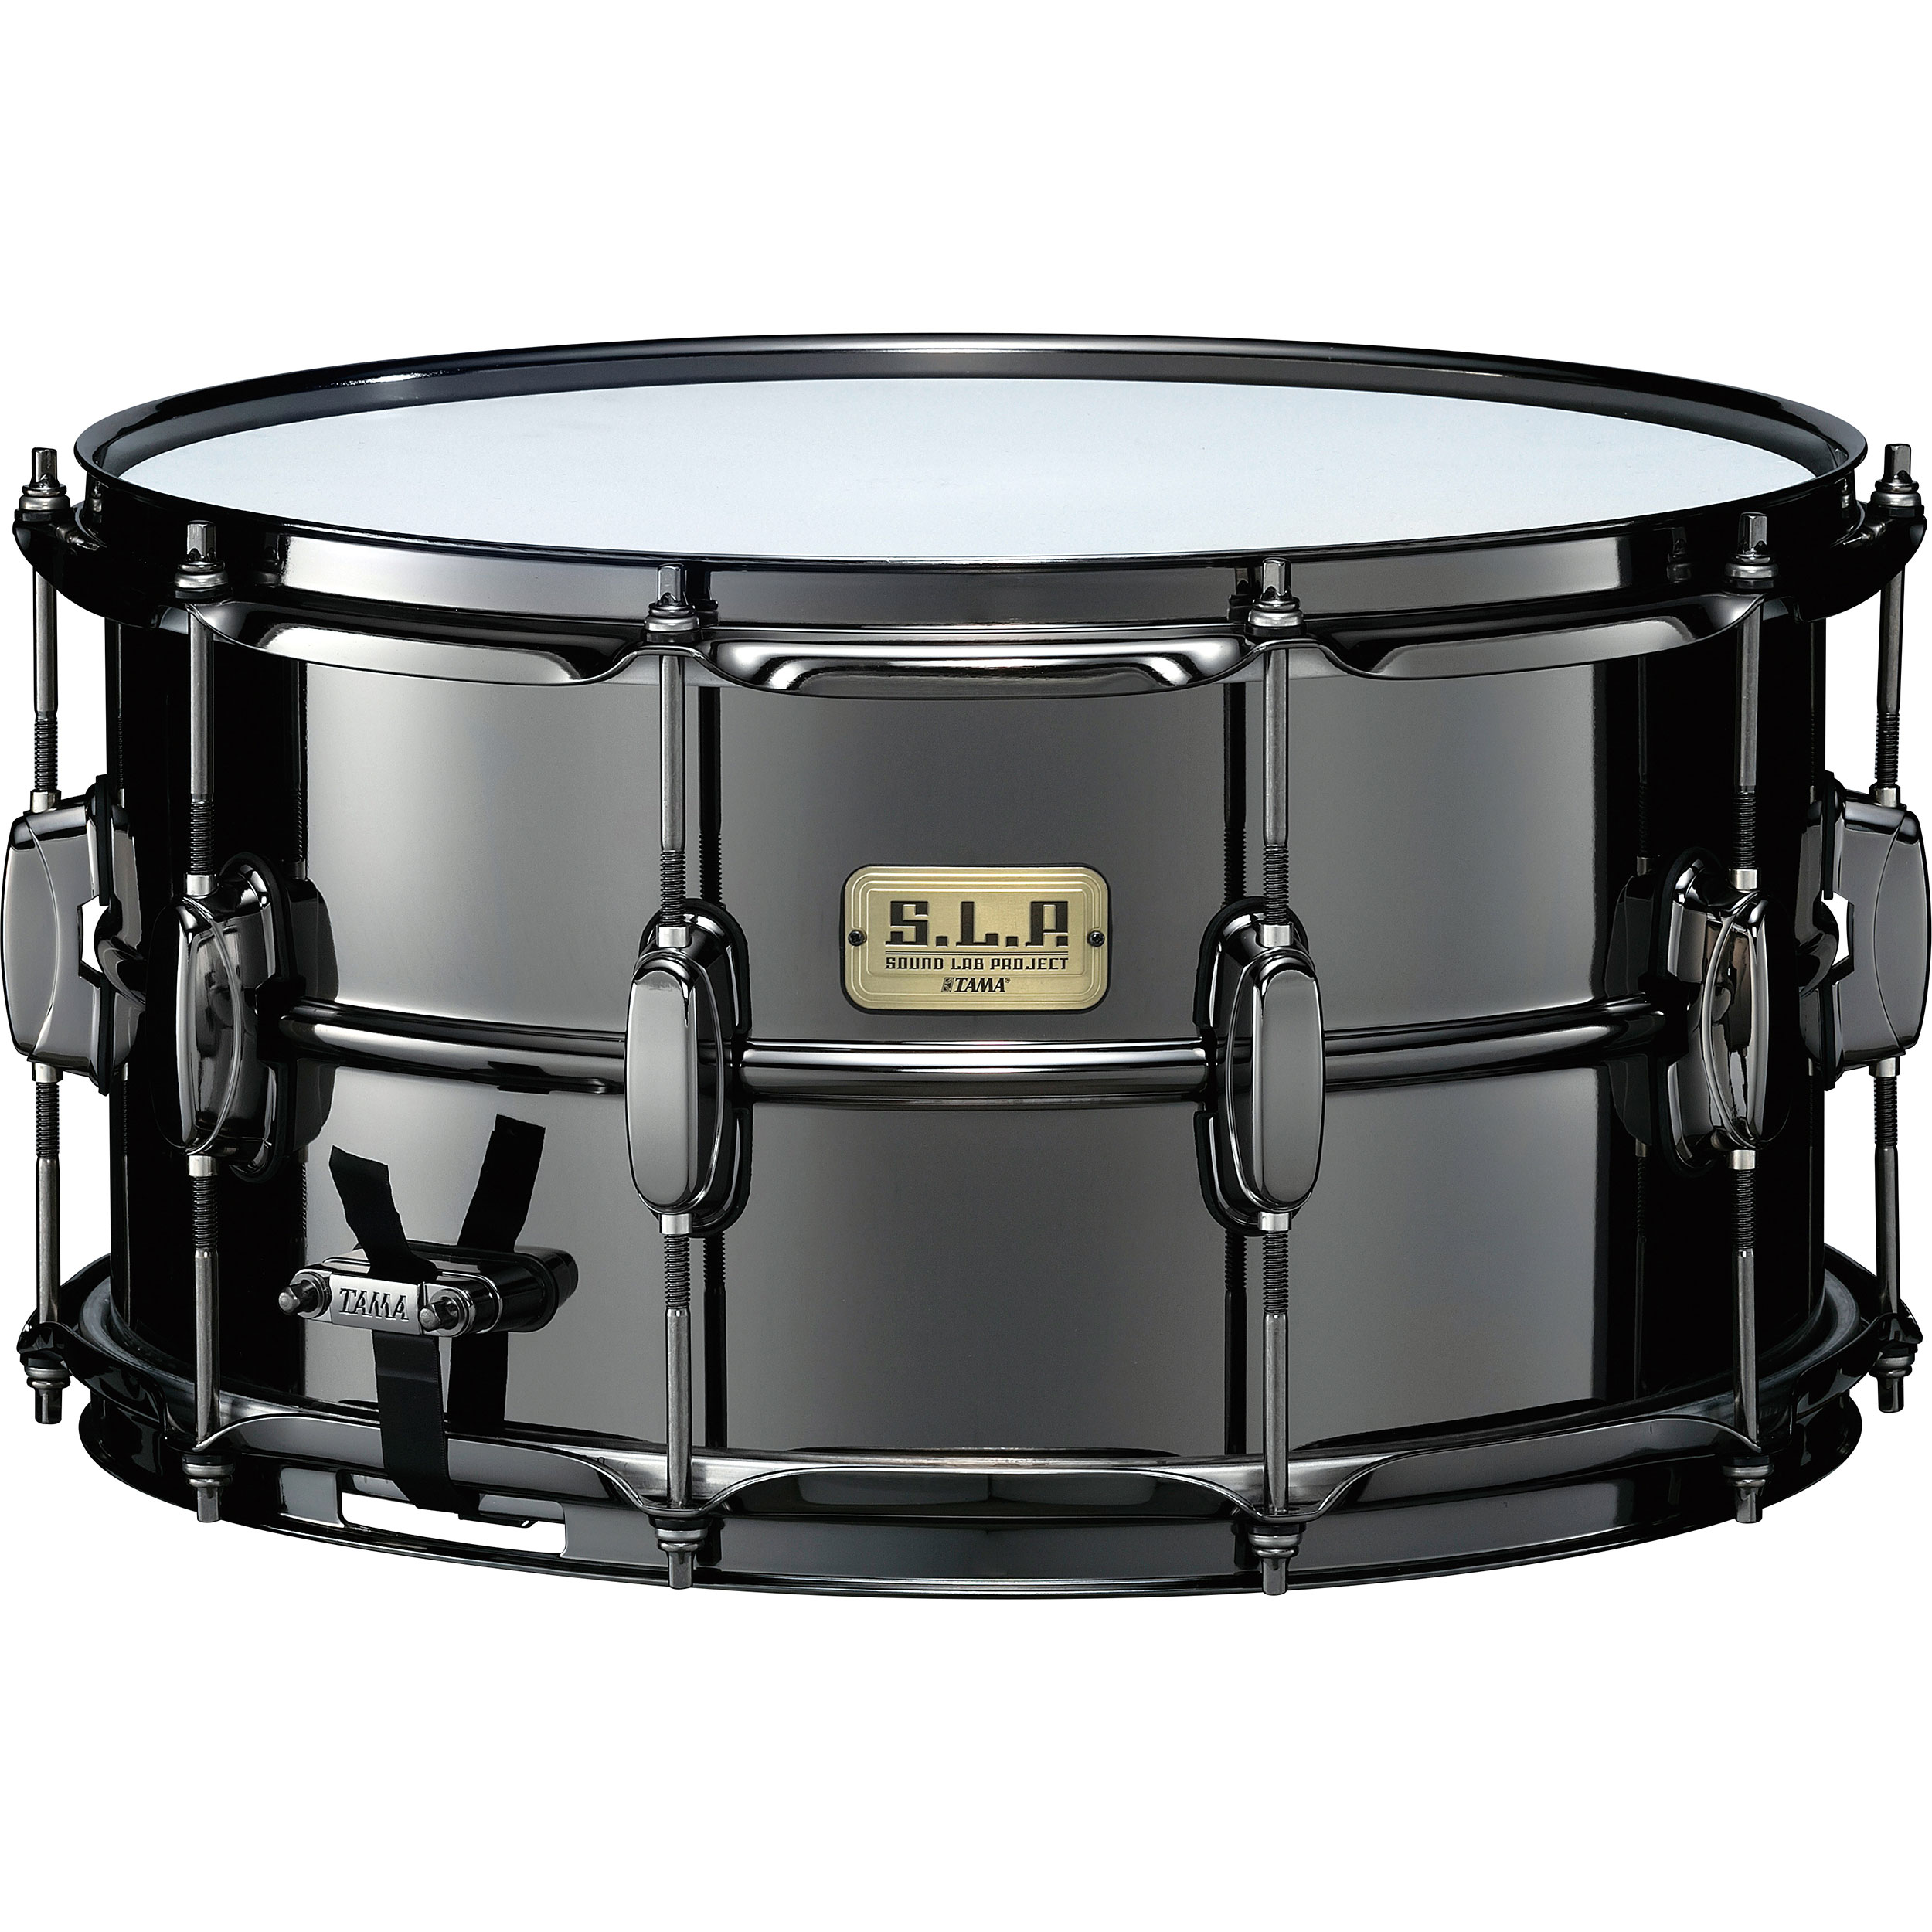 "Tama 8"" x 15"" Limited Edition Big Black Steel Snare Drum"